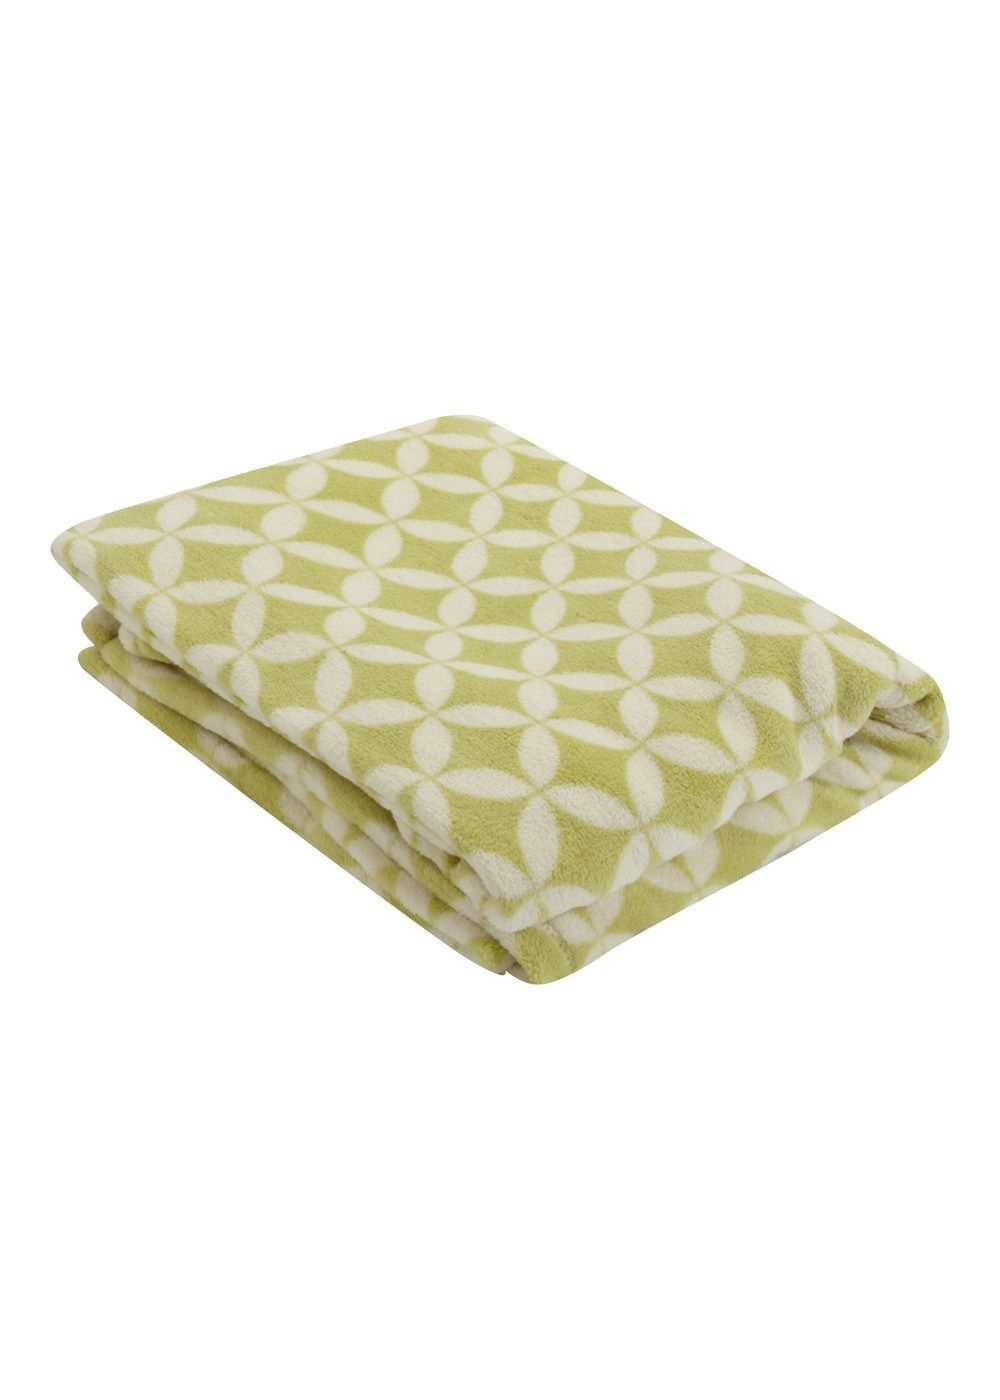 Printed Fleece Throw 130cm X 150cm Matalan Home Decor Fleece Throw Matalan